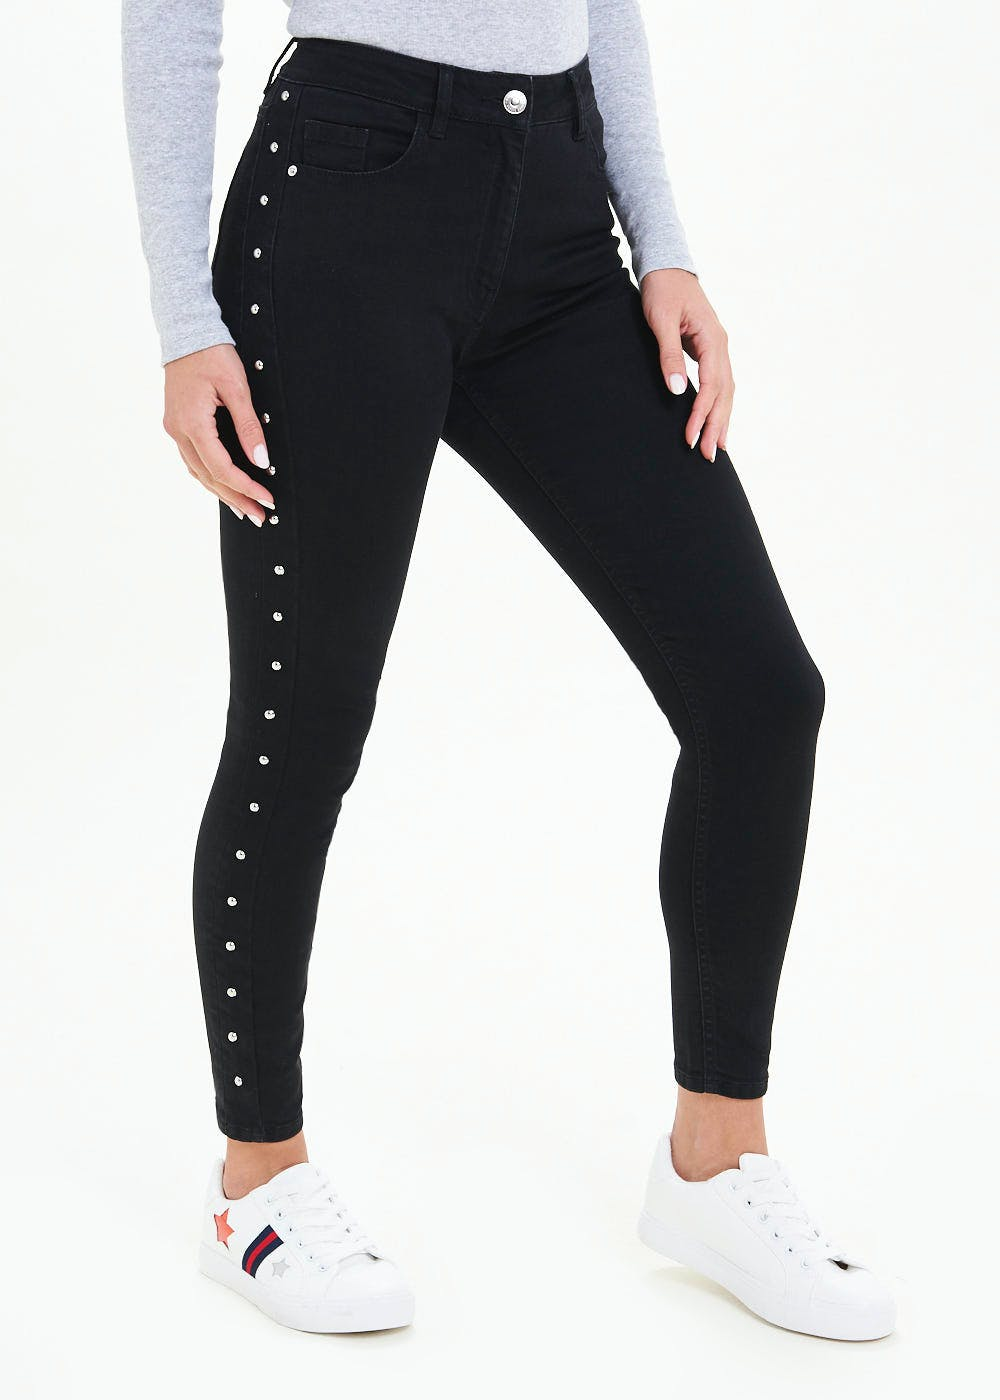 April Stud Side Skinny Ankle Grazer Jeans by Matalan